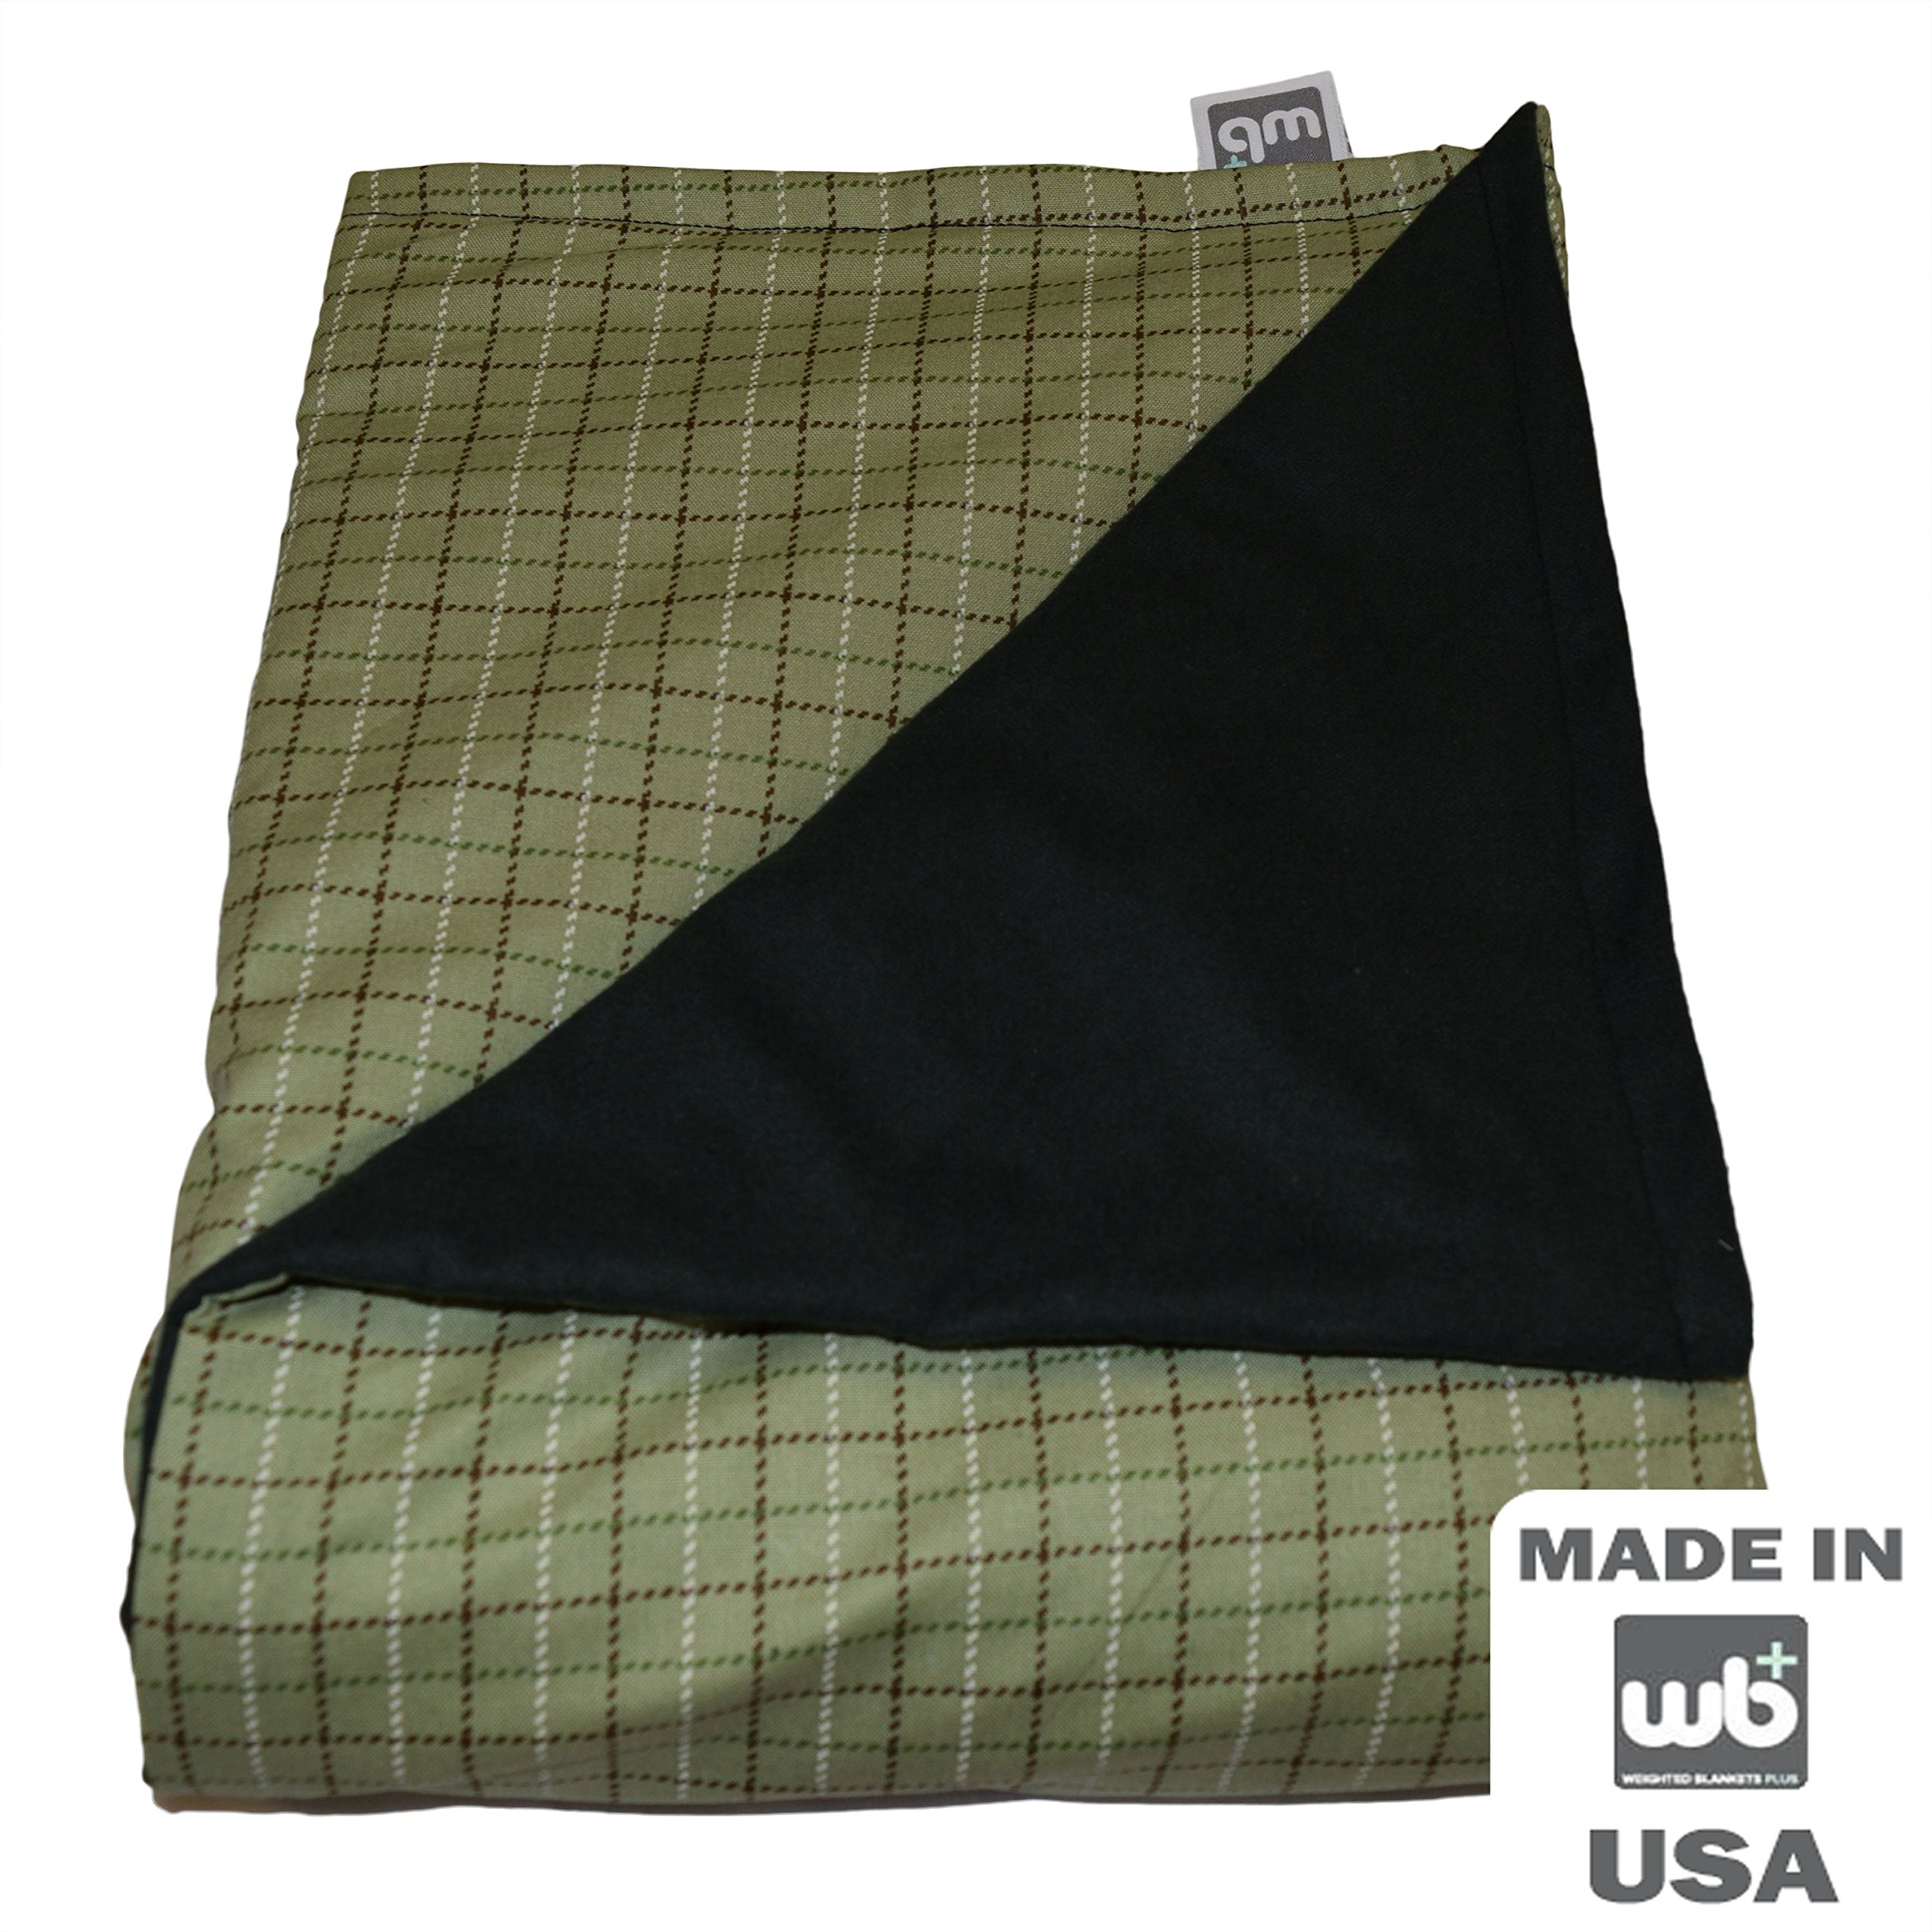 WEIGHTED BLANKETS PLUS LLC - ADULT LARGE WEIGHTED BLANKET - LODGE PLAID - COTTON/FLANNEL (72'' L x 42'' W) 16lb MEDIUM PRESSURE